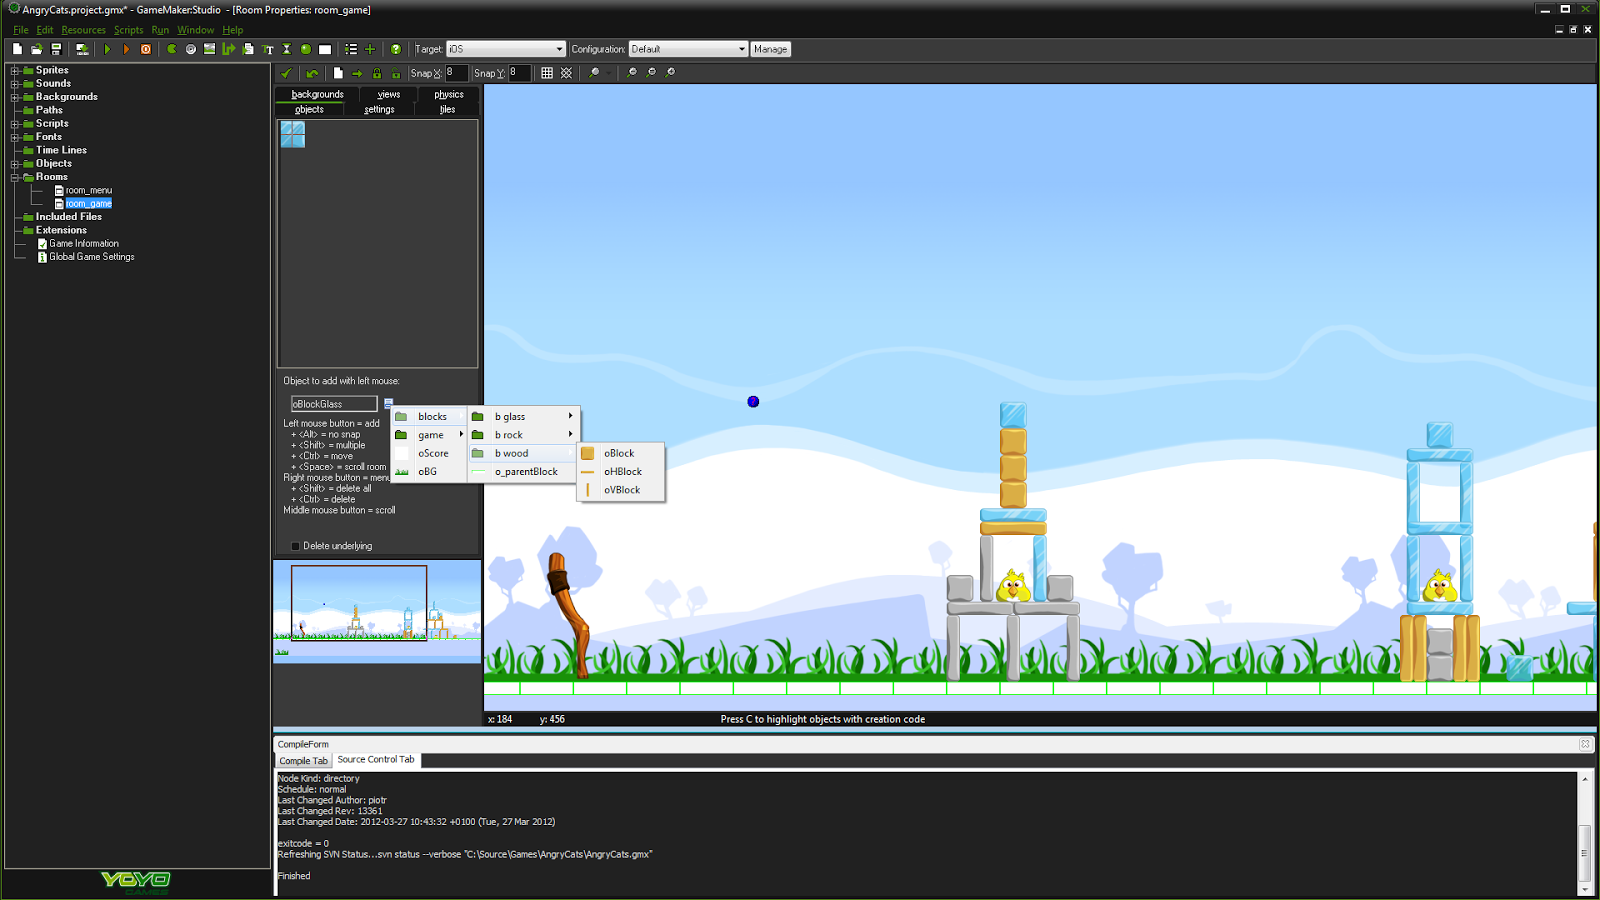 See more about GameMaker Studio